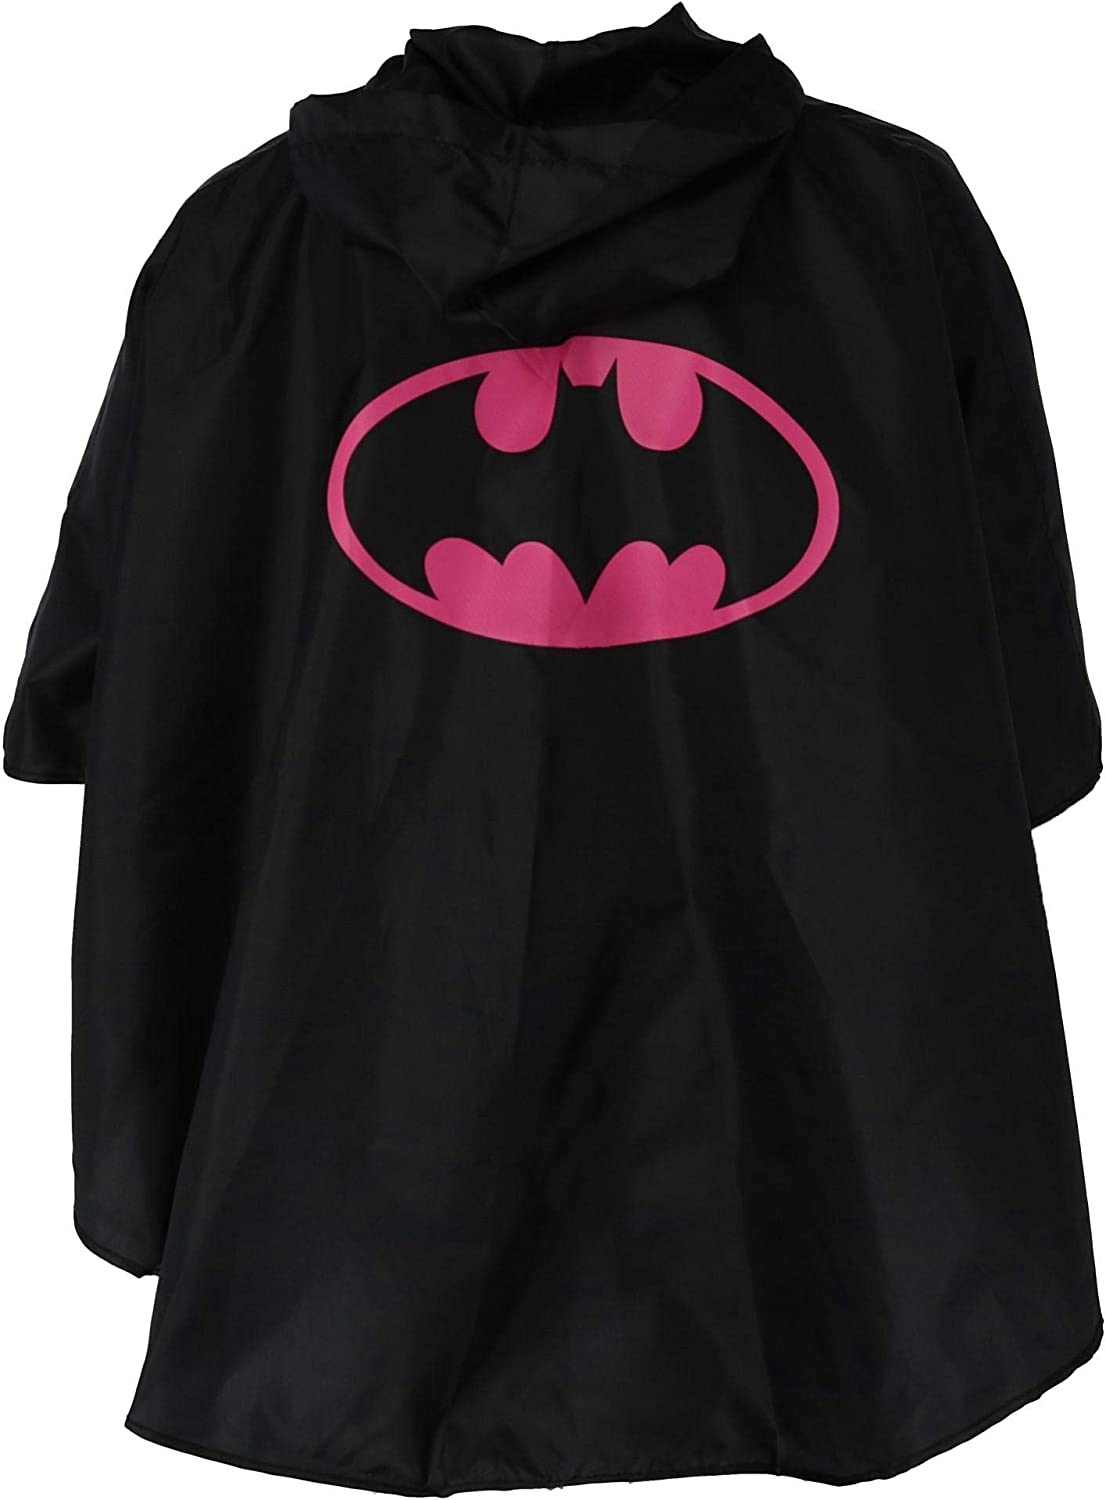 Batman-black1 Boqiao Christmas Halloween Costumes Kids Cape Raincoat,Waterproof Polyester Hooded Cosplay Party Cloak